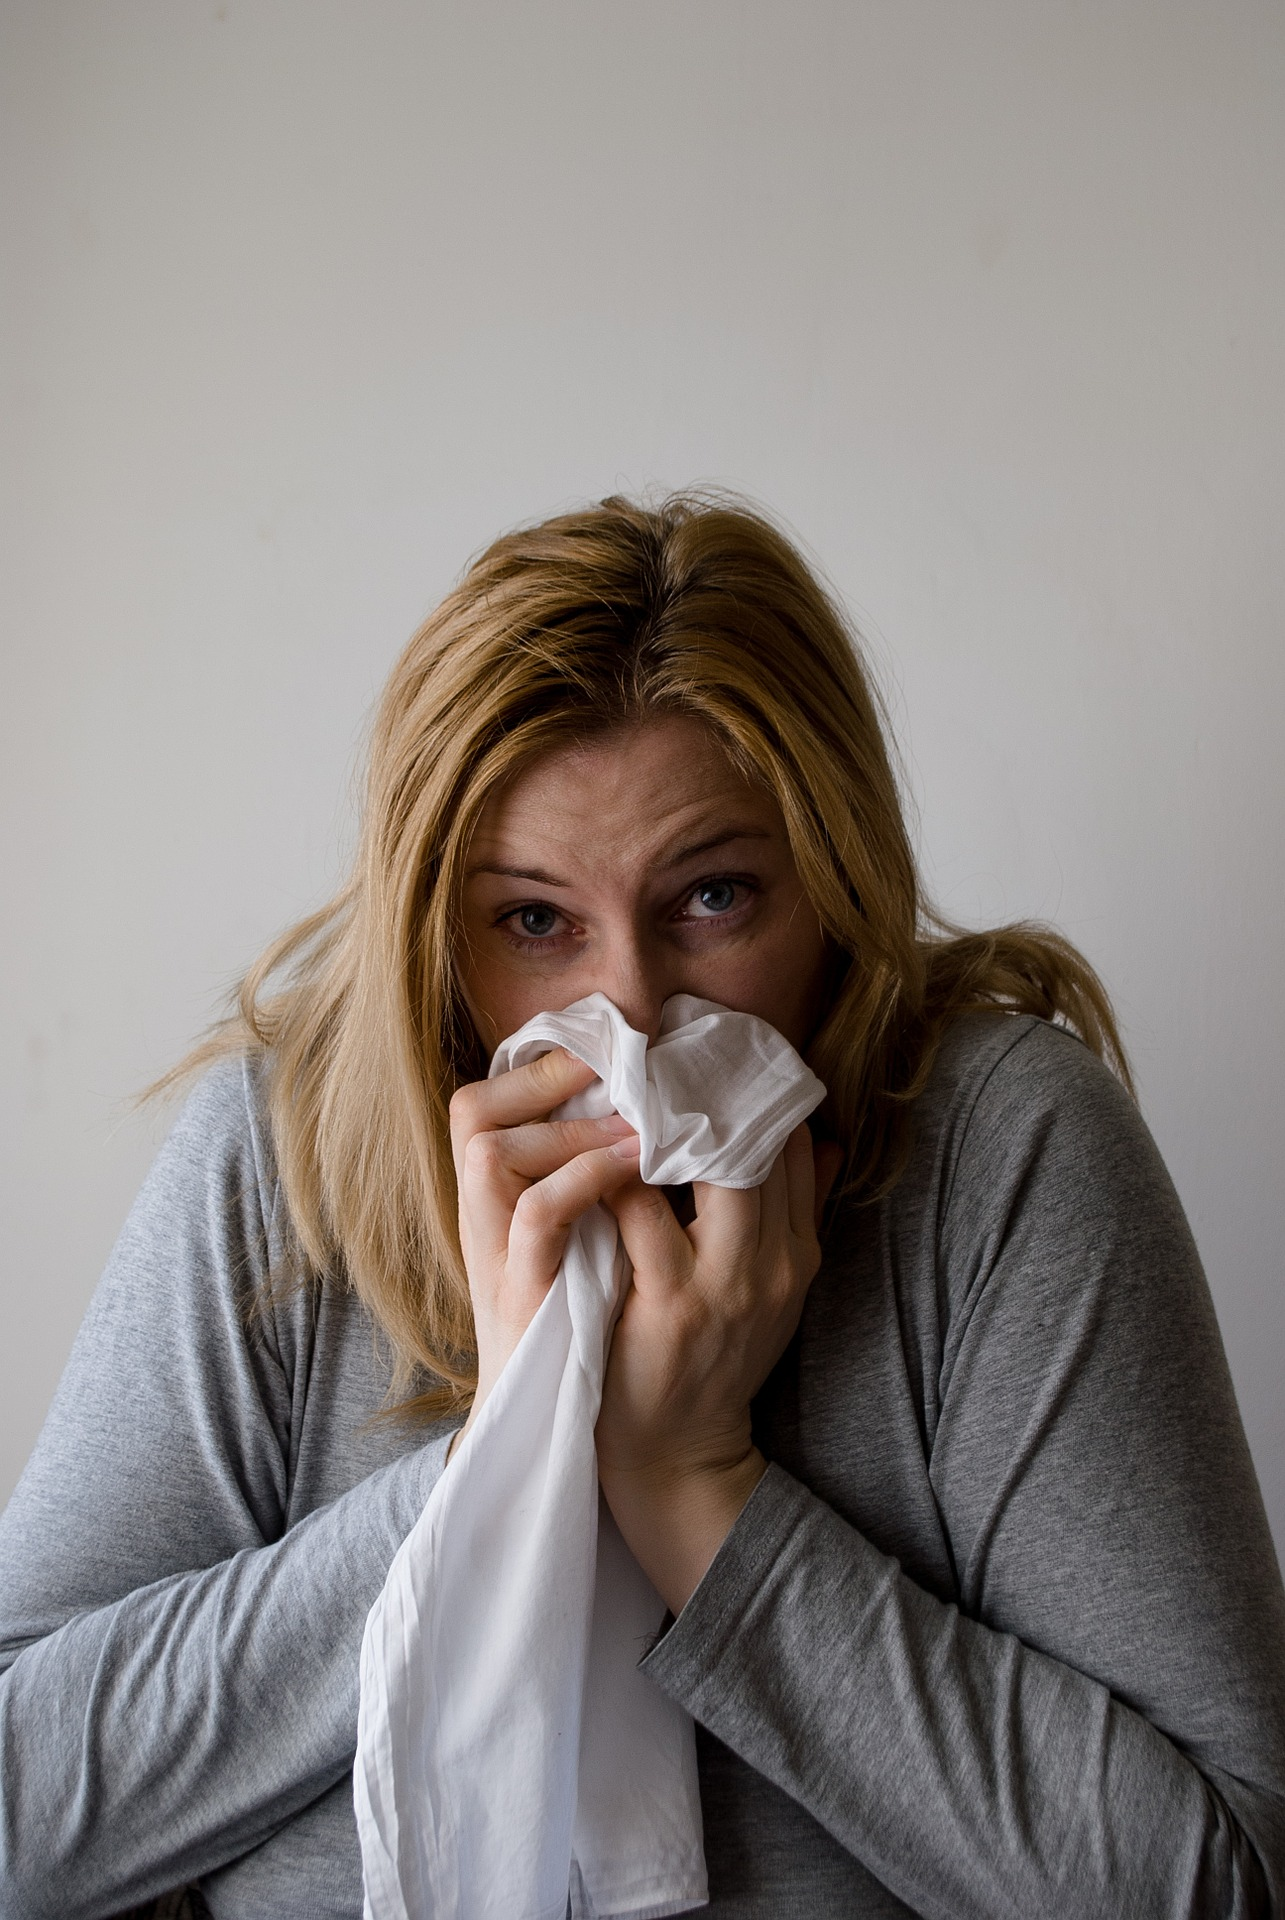 Three natural tips to boost your immune system and avoid the flu this year.